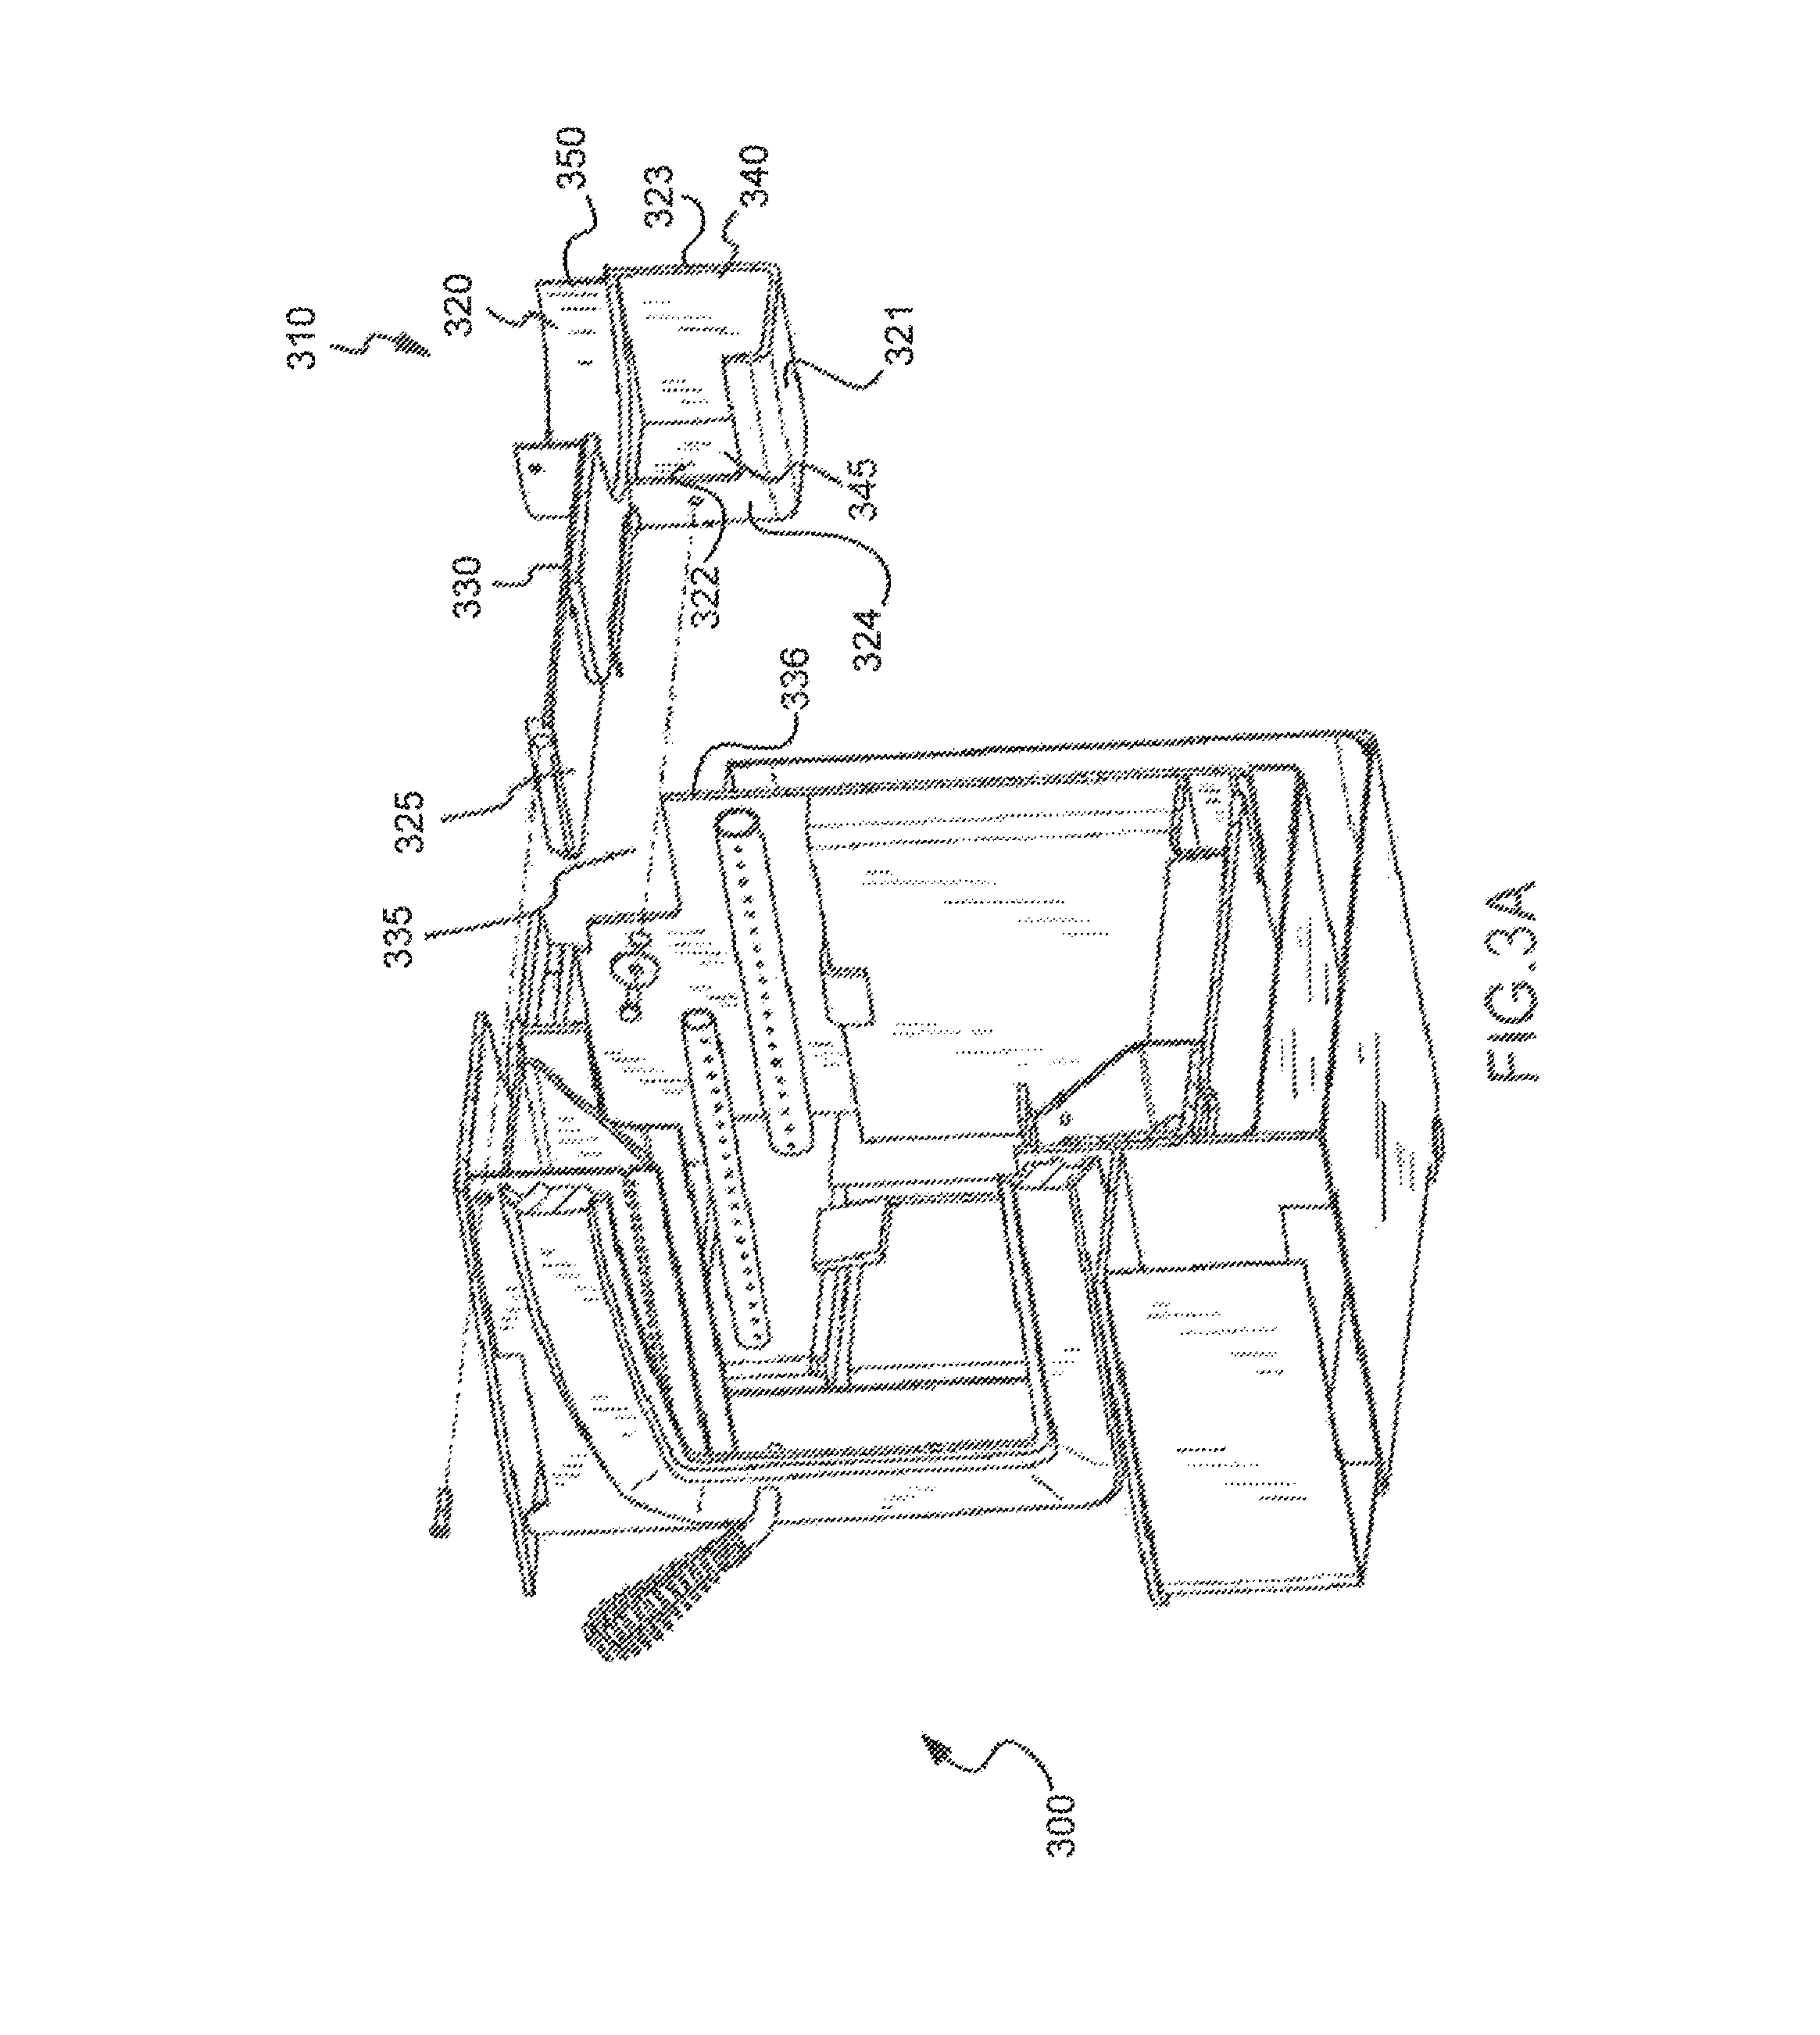 Patent Us8794228 Modular Flue Adapter System And Method